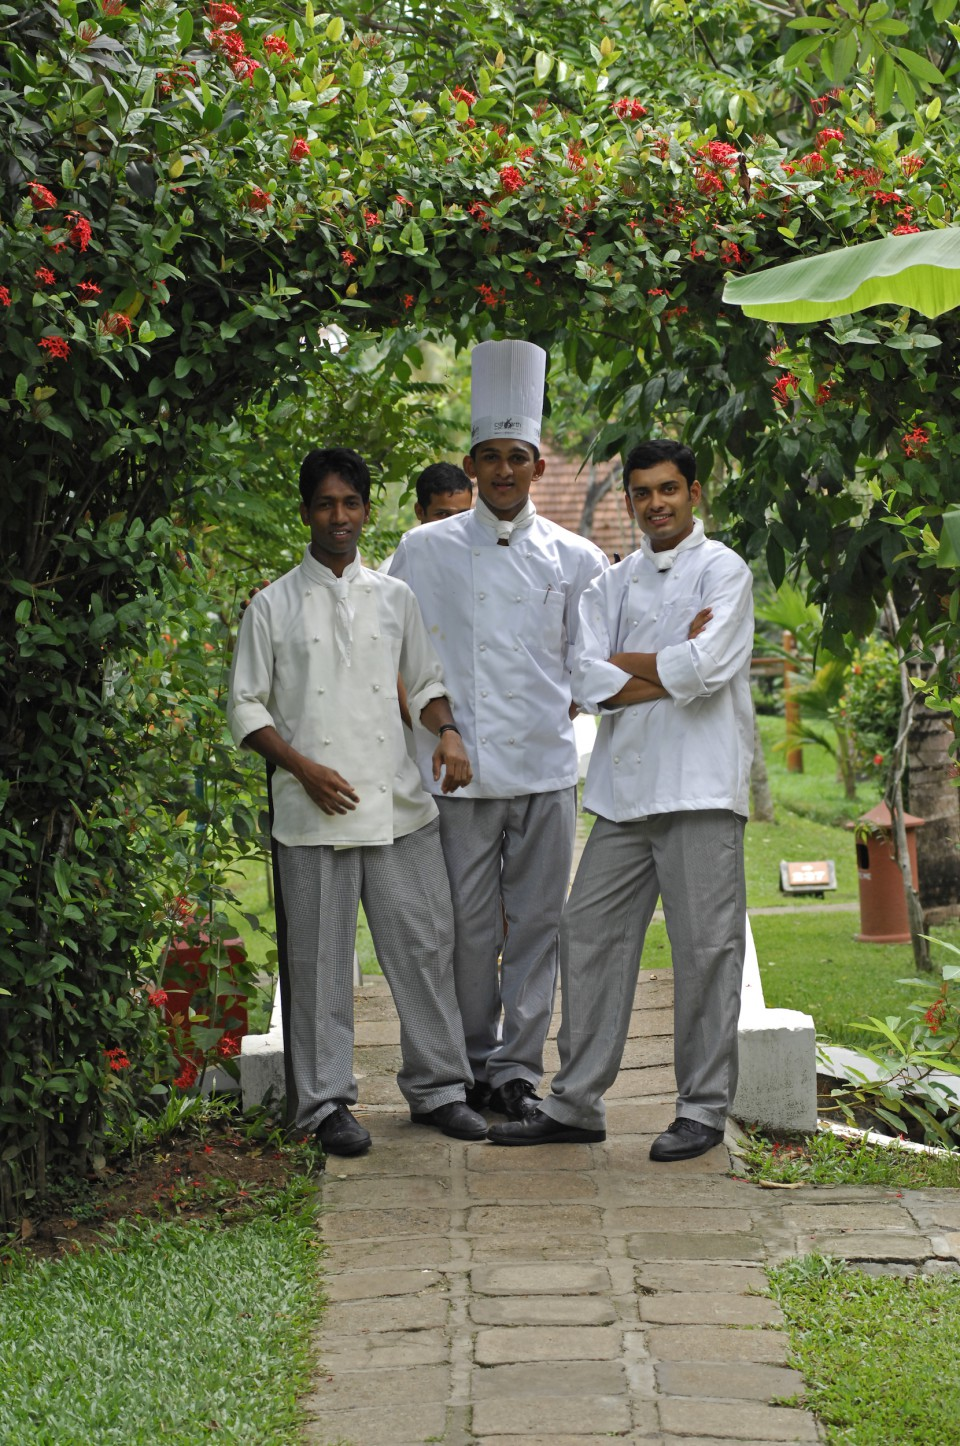 CGH Earth hotels stand for eco-tourism and responsible traveling. Human beings are in balance with the nature. This affects not just tourists but also local workers, who work at the hotels.